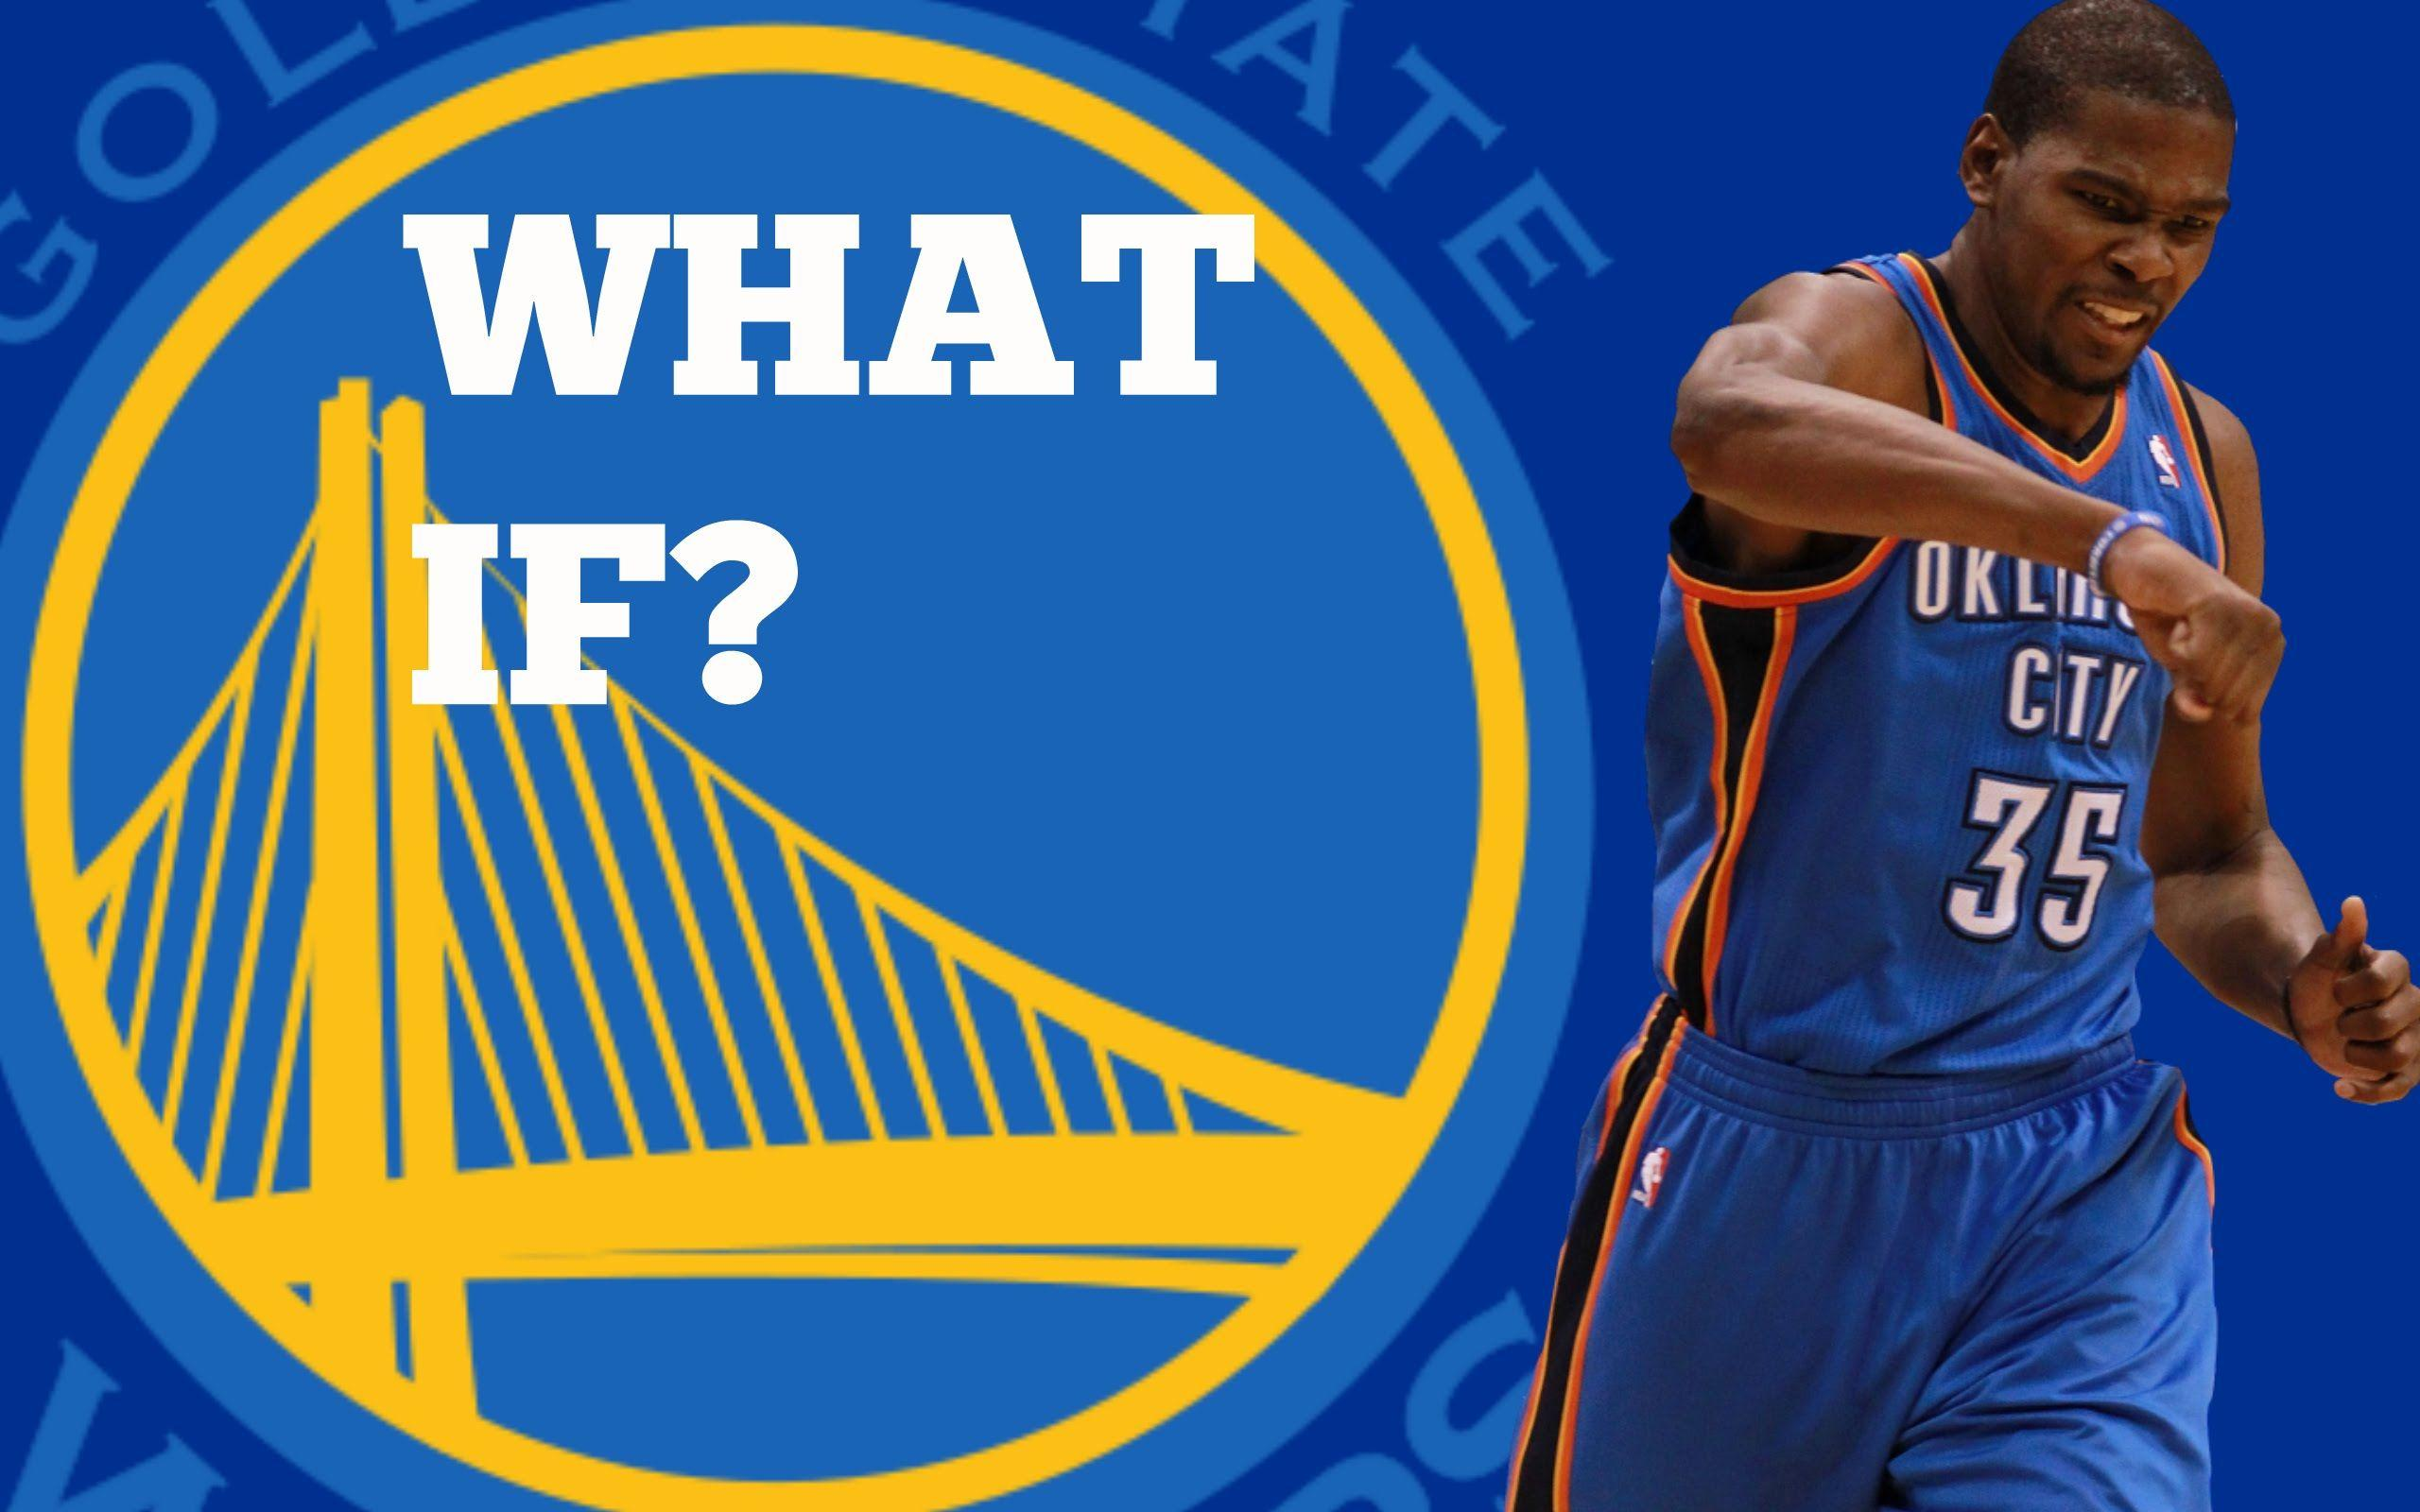 NBA 2K16: What If Kevin Durant Signs with the Golden State